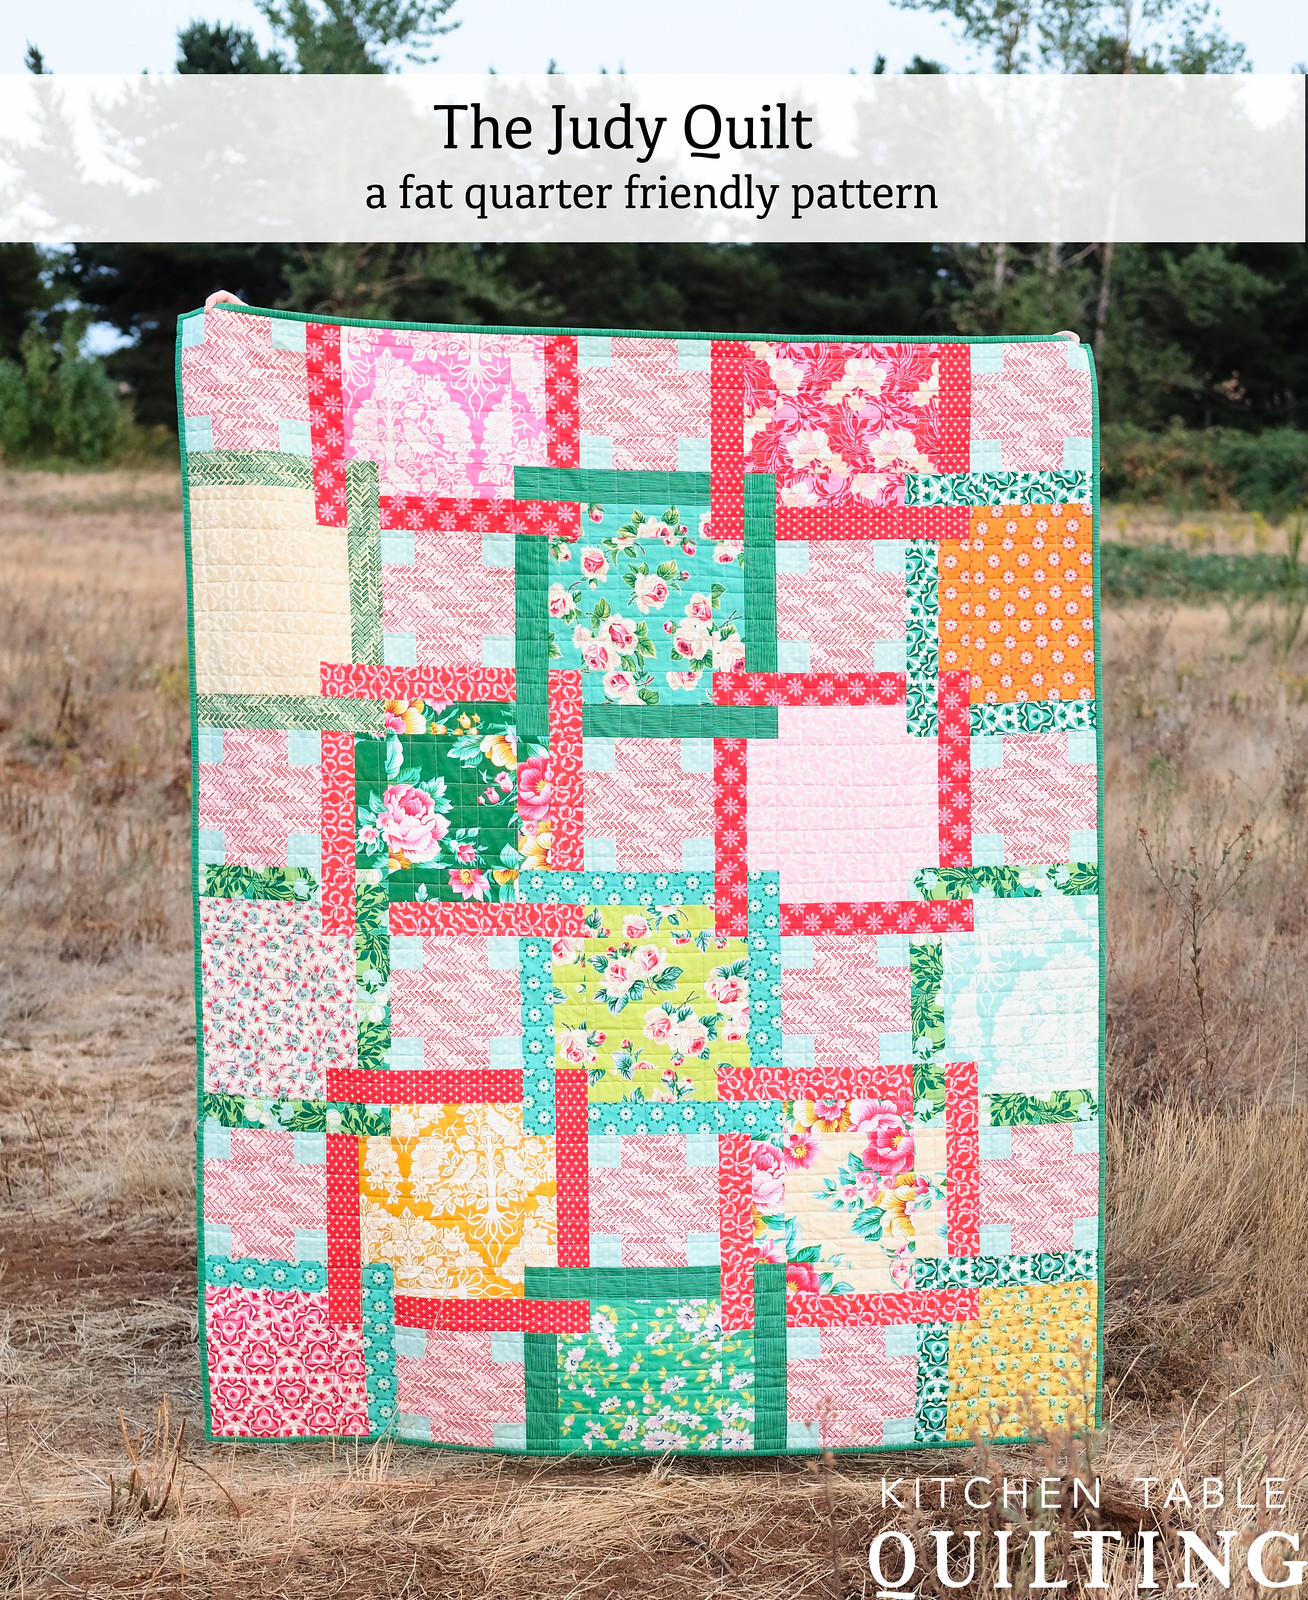 The Judy Quilt Pattern - Kitchen Table Quilting